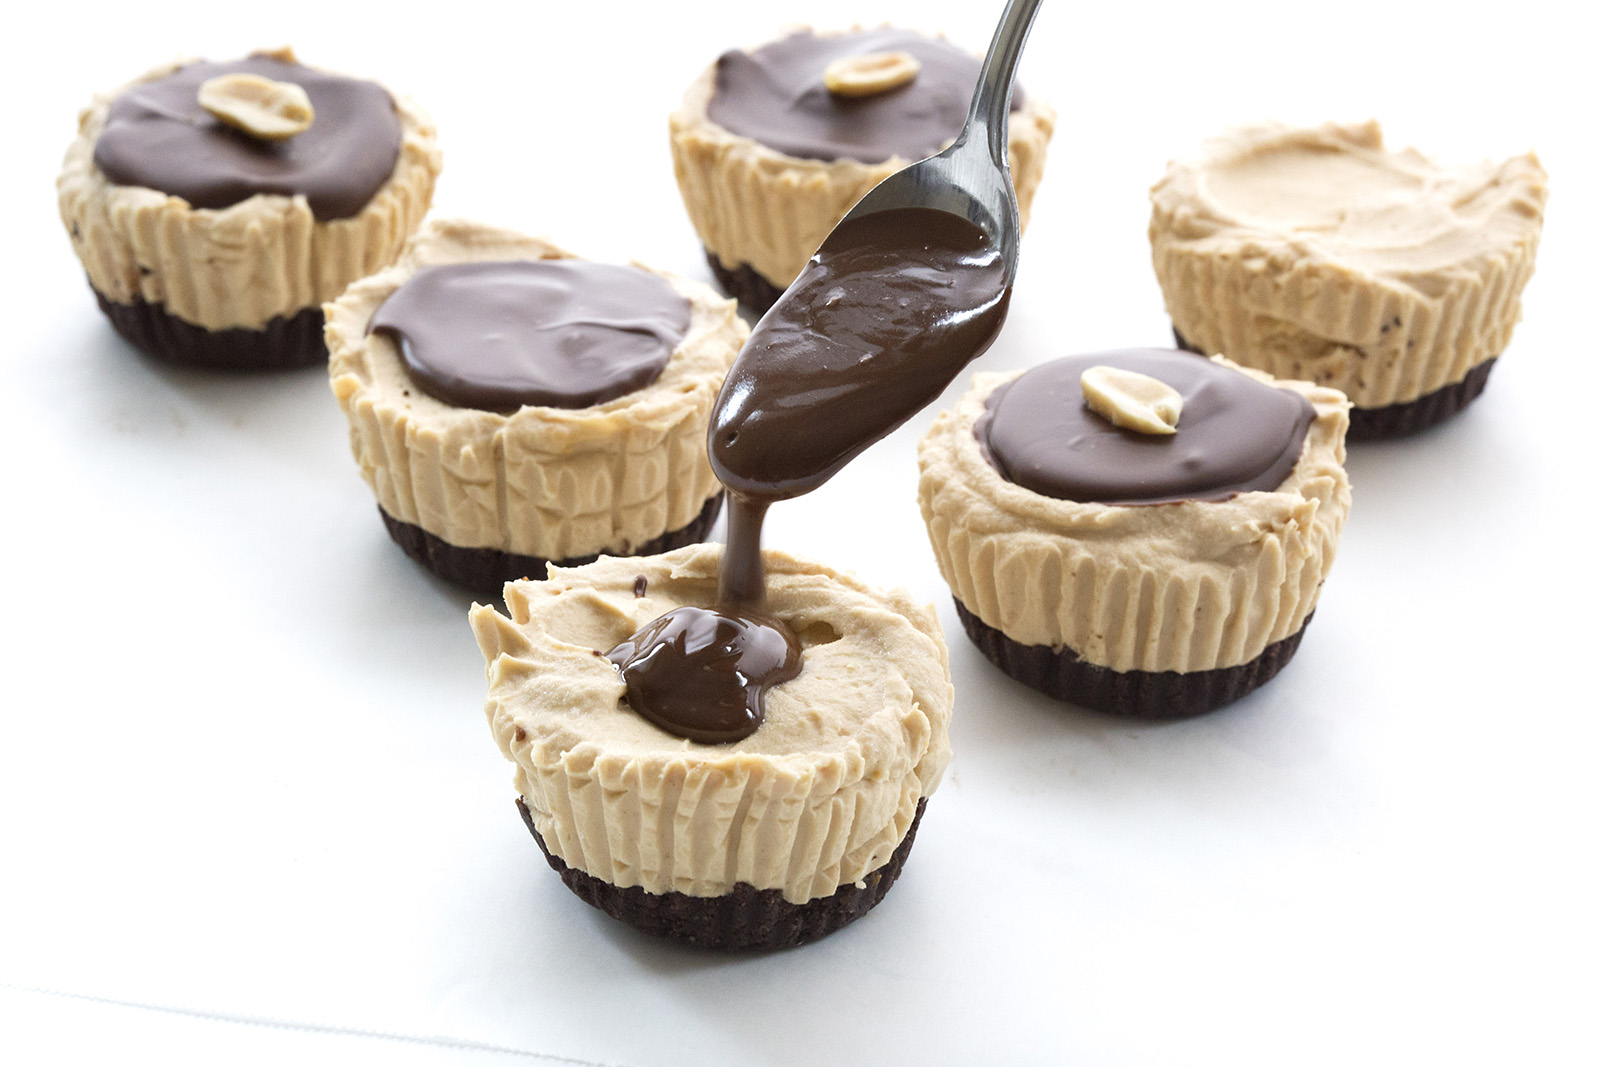 Mini No Bake Peanut Butter Pies